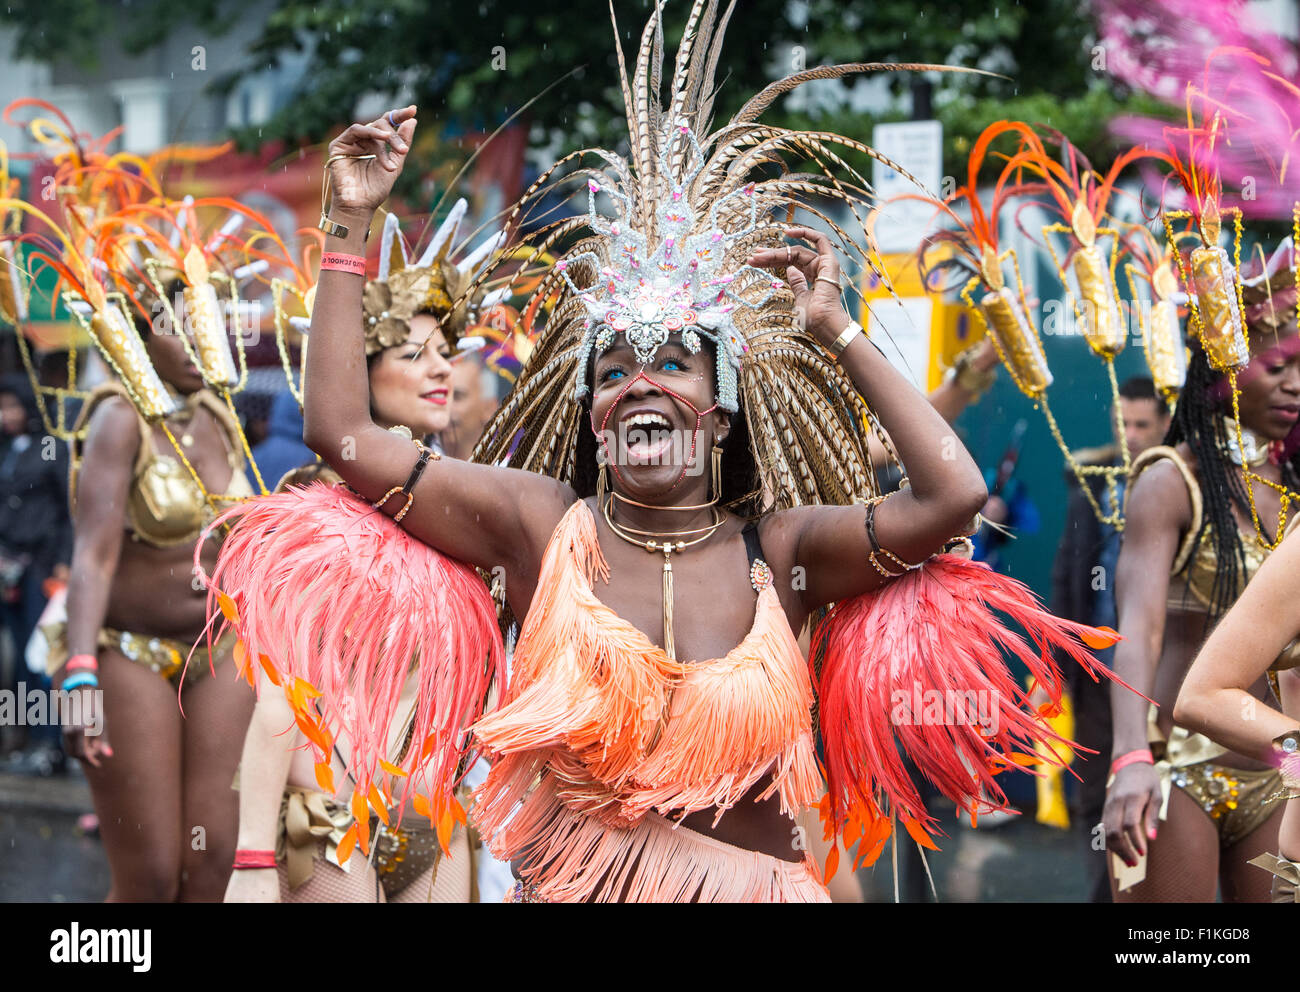 Célébration à l'Carnival-The Notting Hill, plus grand festival de rue en Europe. La culture des Photo Stock